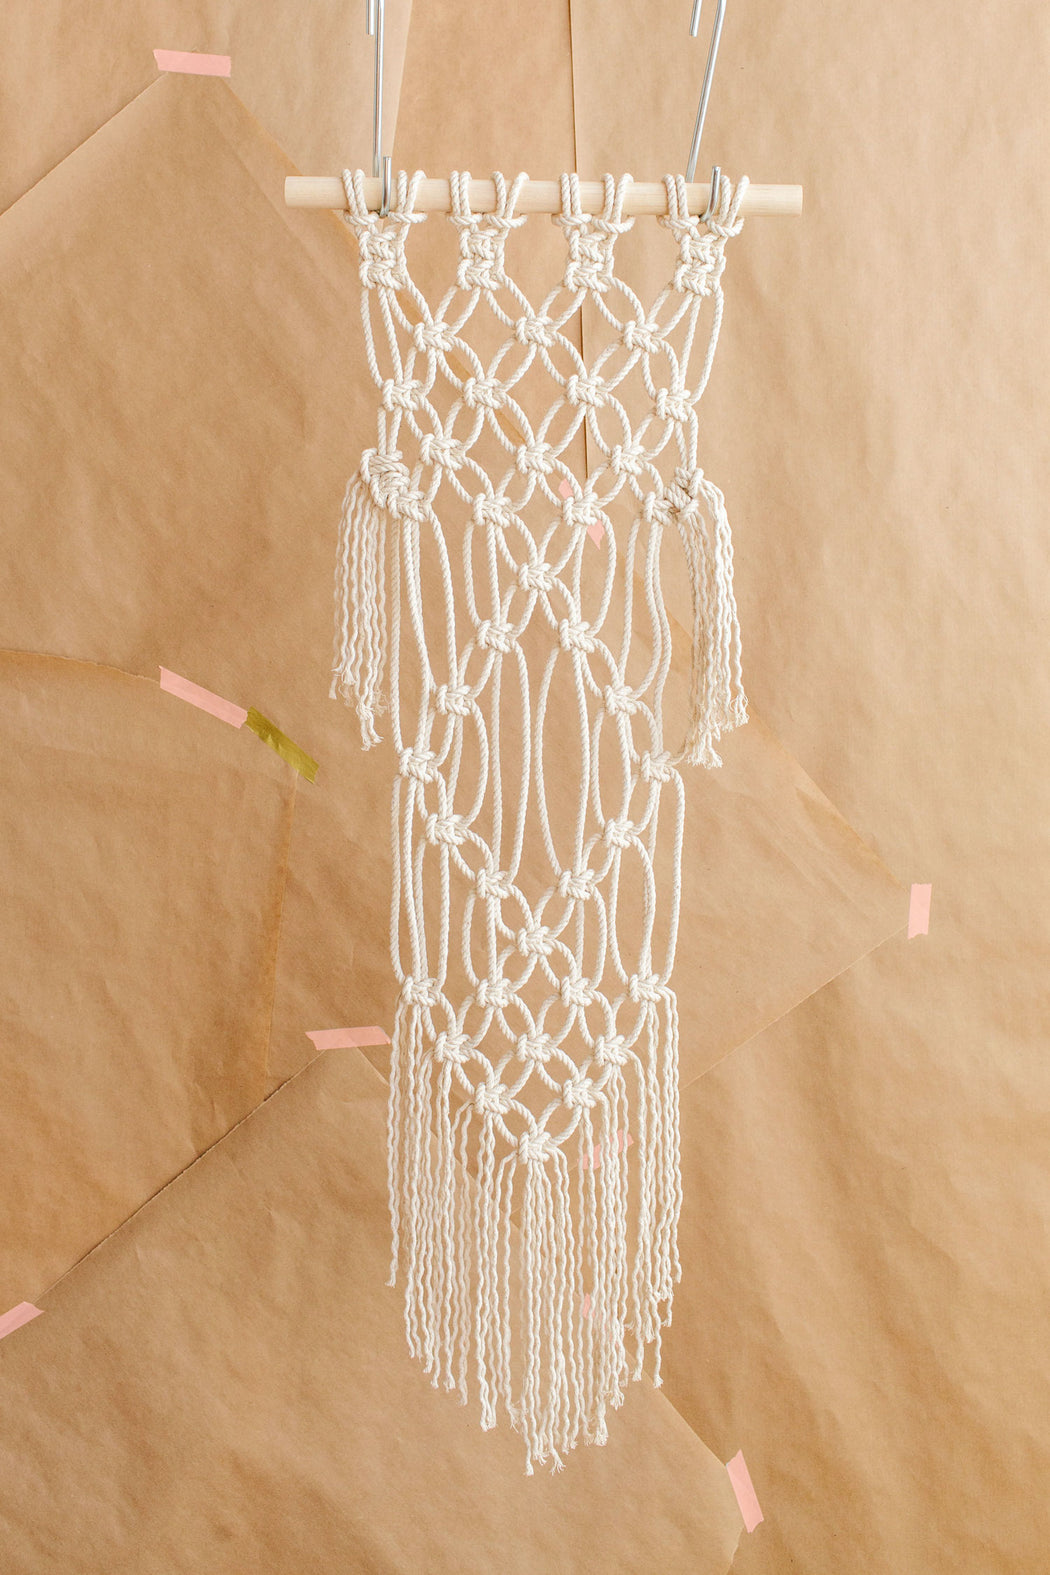 DIY Macramé Wall Hanging Kit - Pistils Nursery